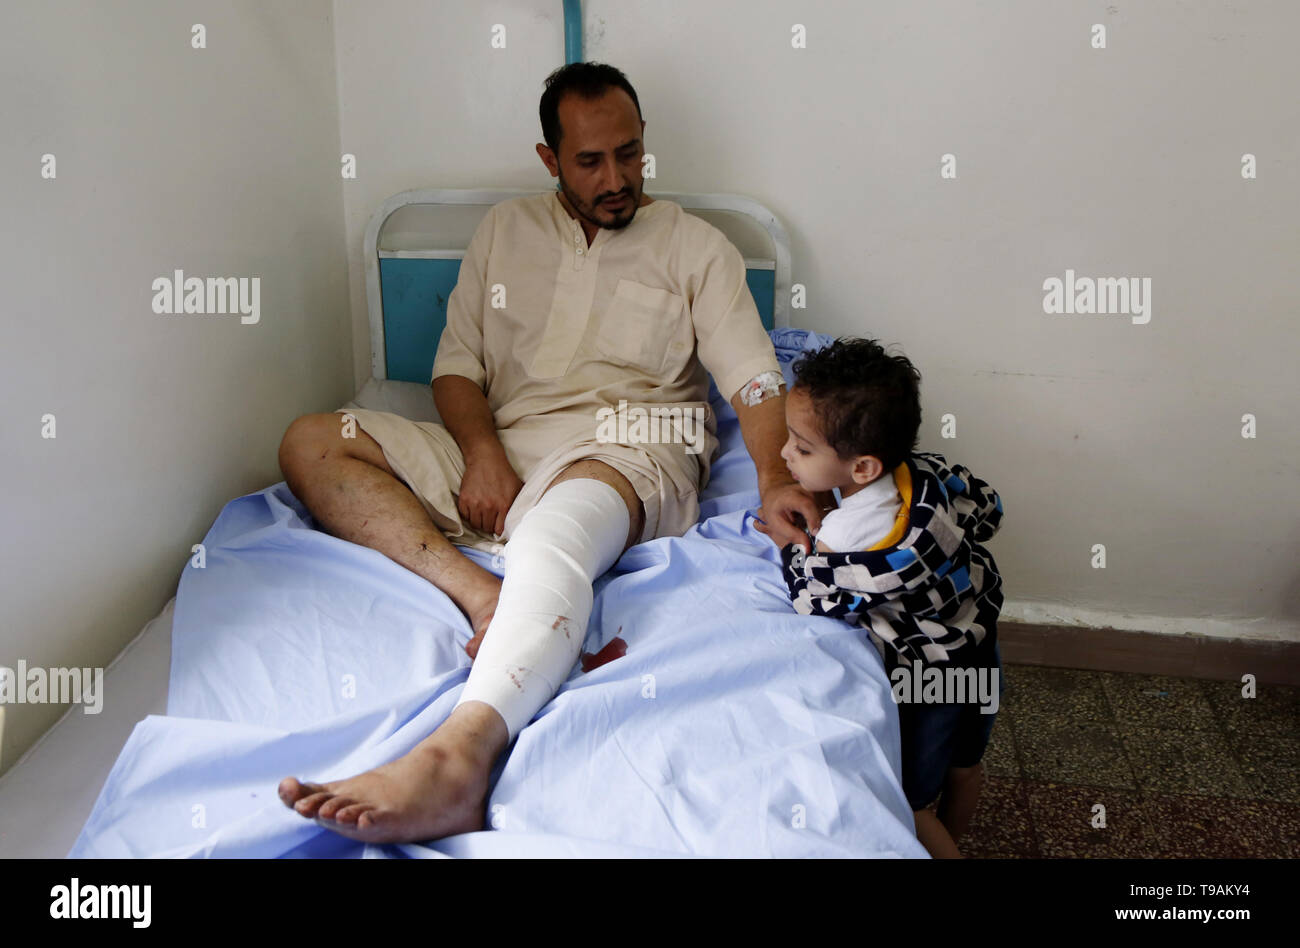 Sanna, Yemen. 17th May, 2019. A man injured in an airstrike receives treatment at a hospital in Sanaa, Yemen, May 17, 2019. The Saudi Arabia-led coalition launched airstrikes on Houthi rebels' targets in the Yemeni capital Sanaa on Thursday morning. At least six-member family were killed and more than 30 others were wounded when a coalition airstrike hit a house in the center of Sanaa, the rebel-controlled Health Ministry said in a statement, adding that the death toll could rise as many injured remain in critical condition. Credit: Mohammed Mohammed/Xinhua/Alamy Live News - Stock Image